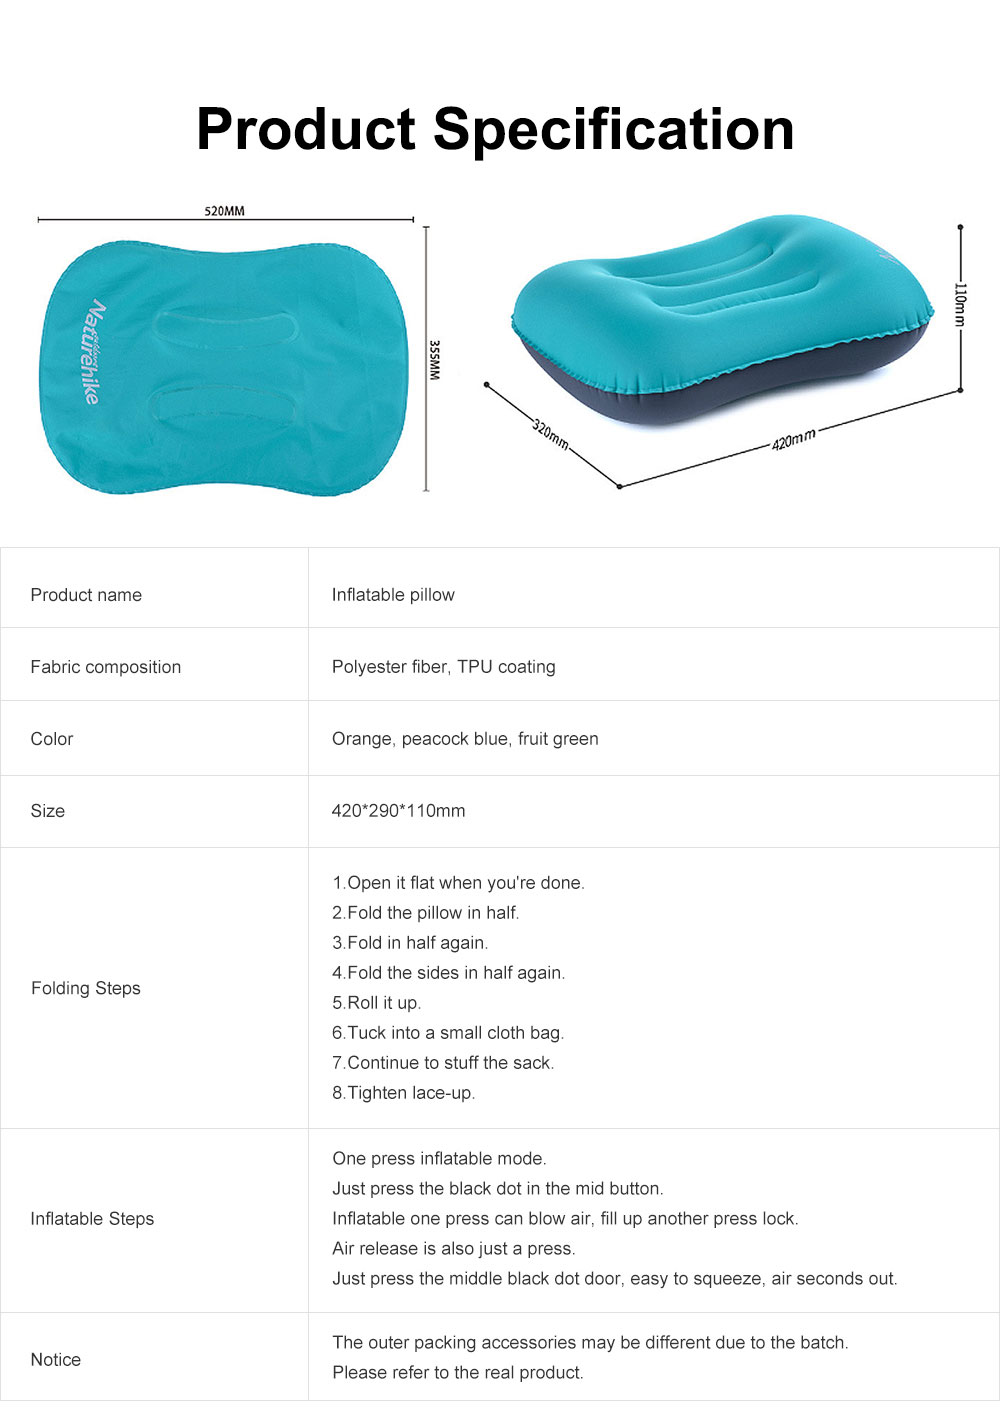 Inflatable Pillow for Outdoors, Office, Traveling, Enthusiast Fit the Neck Curve Pillow, with Pressure Rubber Sealing Side, One Key Charge and Deflate Travel Supply 6